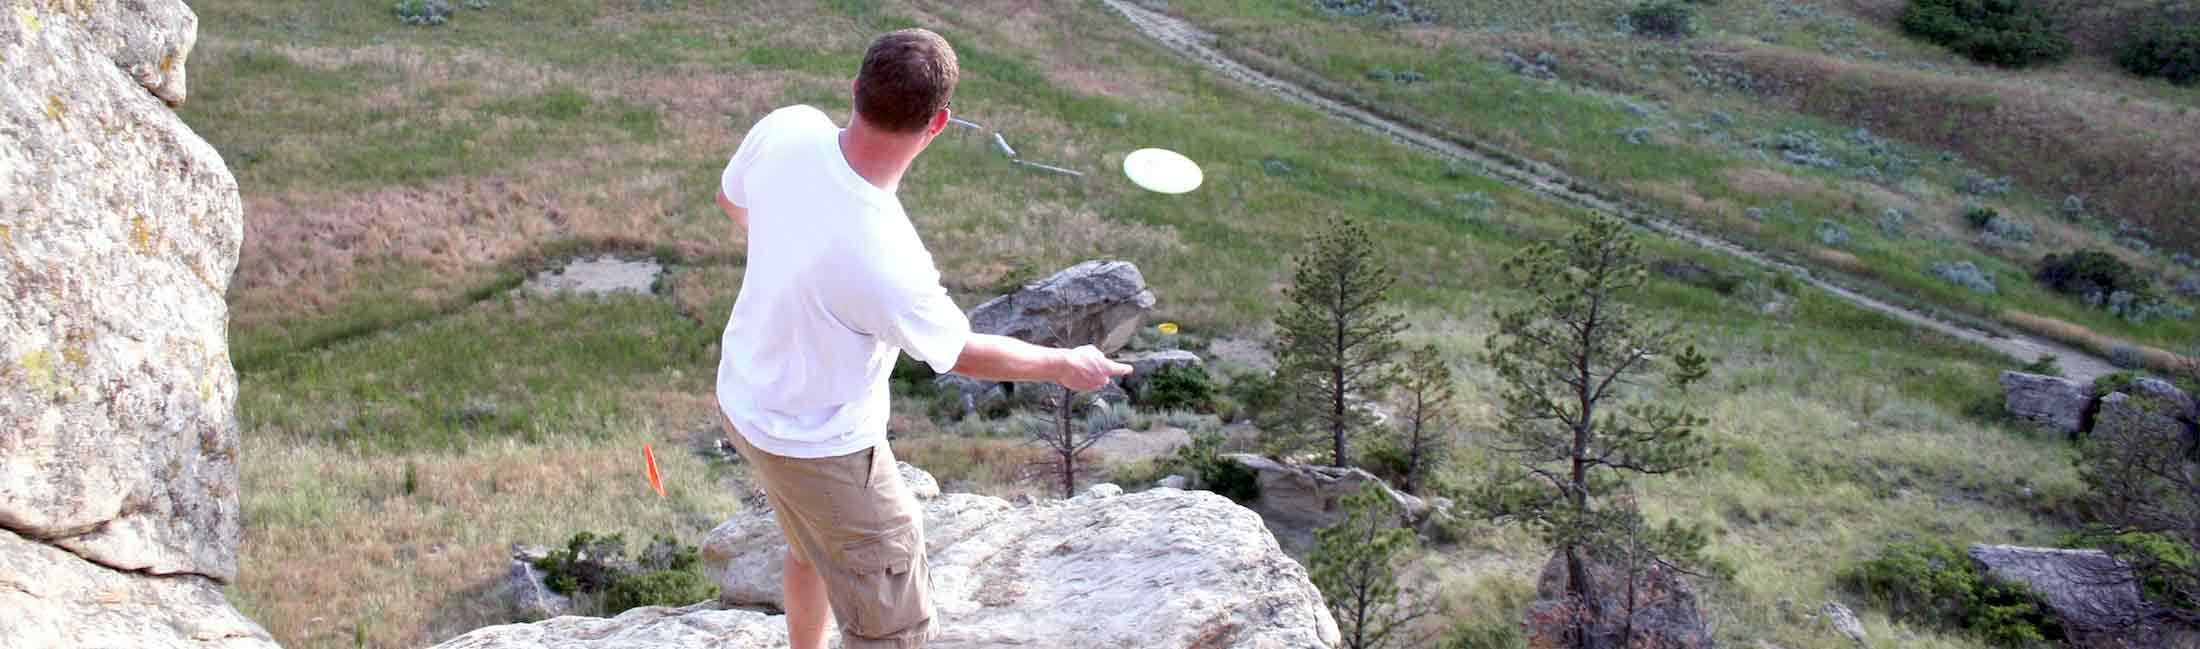 Disc Golf (Folf) in Missoula, Montana